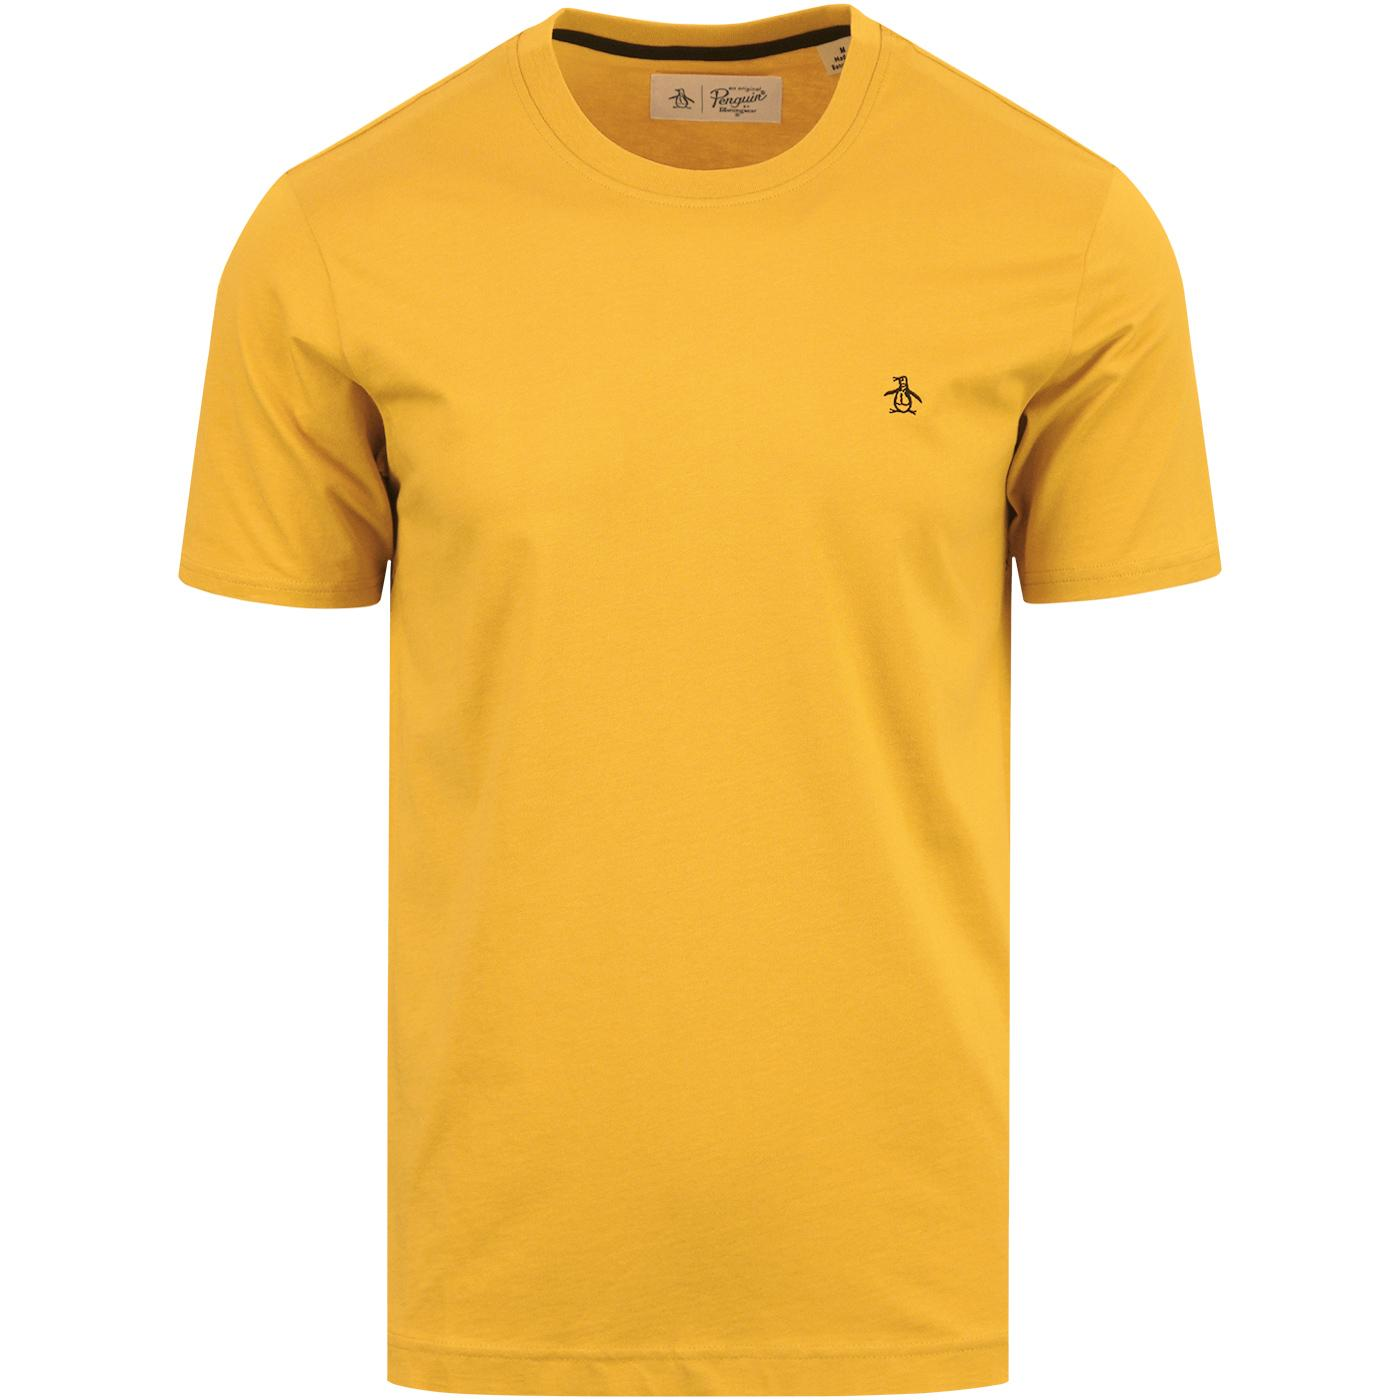 ORIGINAL PENGUIN Basic Pin Point Logo Crew Tee HG